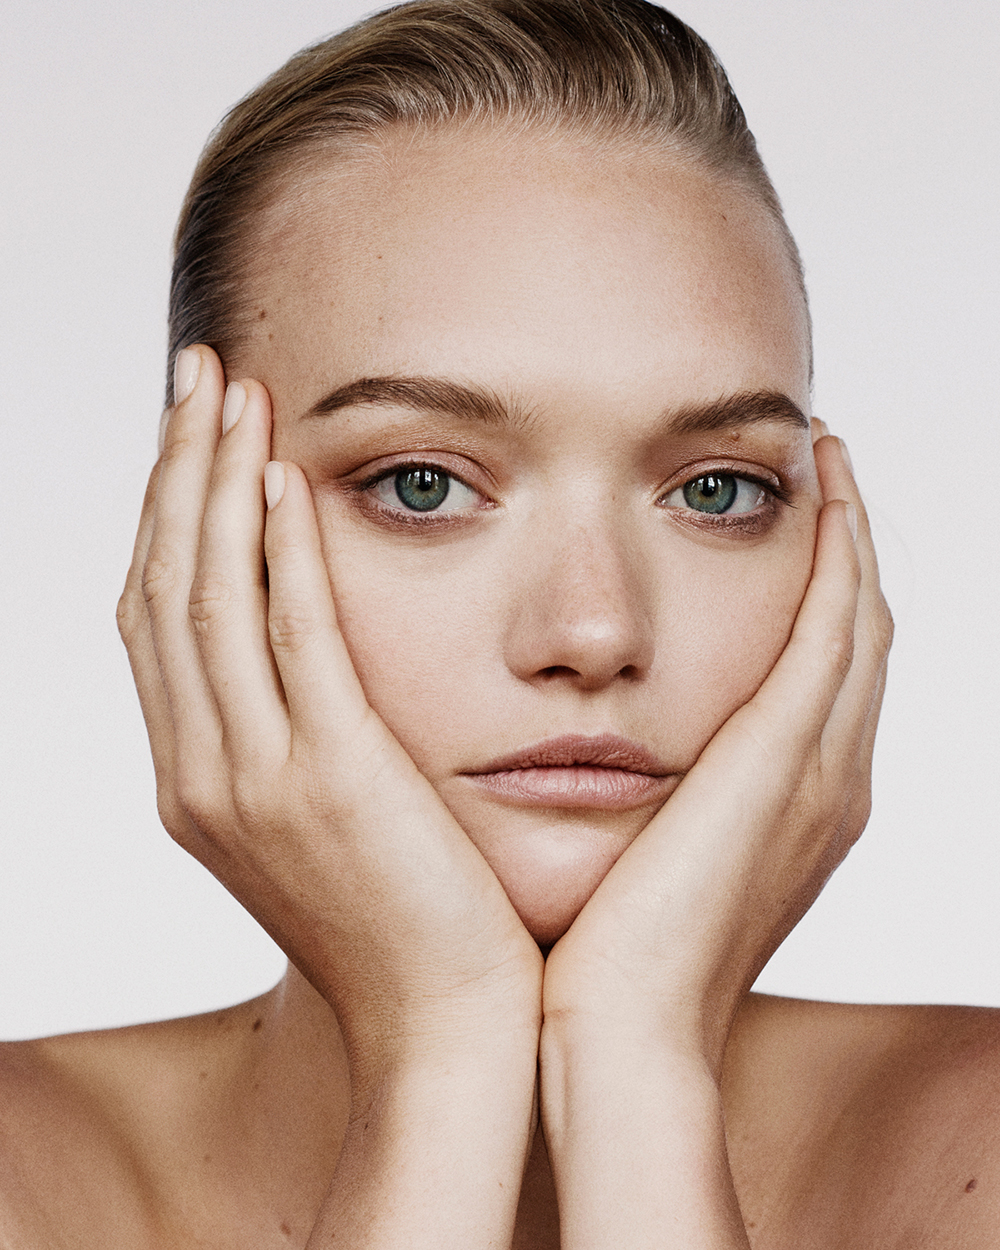 What outcome should you expect? - Because hair grows in cycles and not all of body hair is in the same stages at a time, it takes a few treatments for a significant reduction. The outcome also depends on hair quality, number of hair follicles, different metabolism and hormonal level of each individual, but it usually takes only four to six treatments to remove the majority of hair.